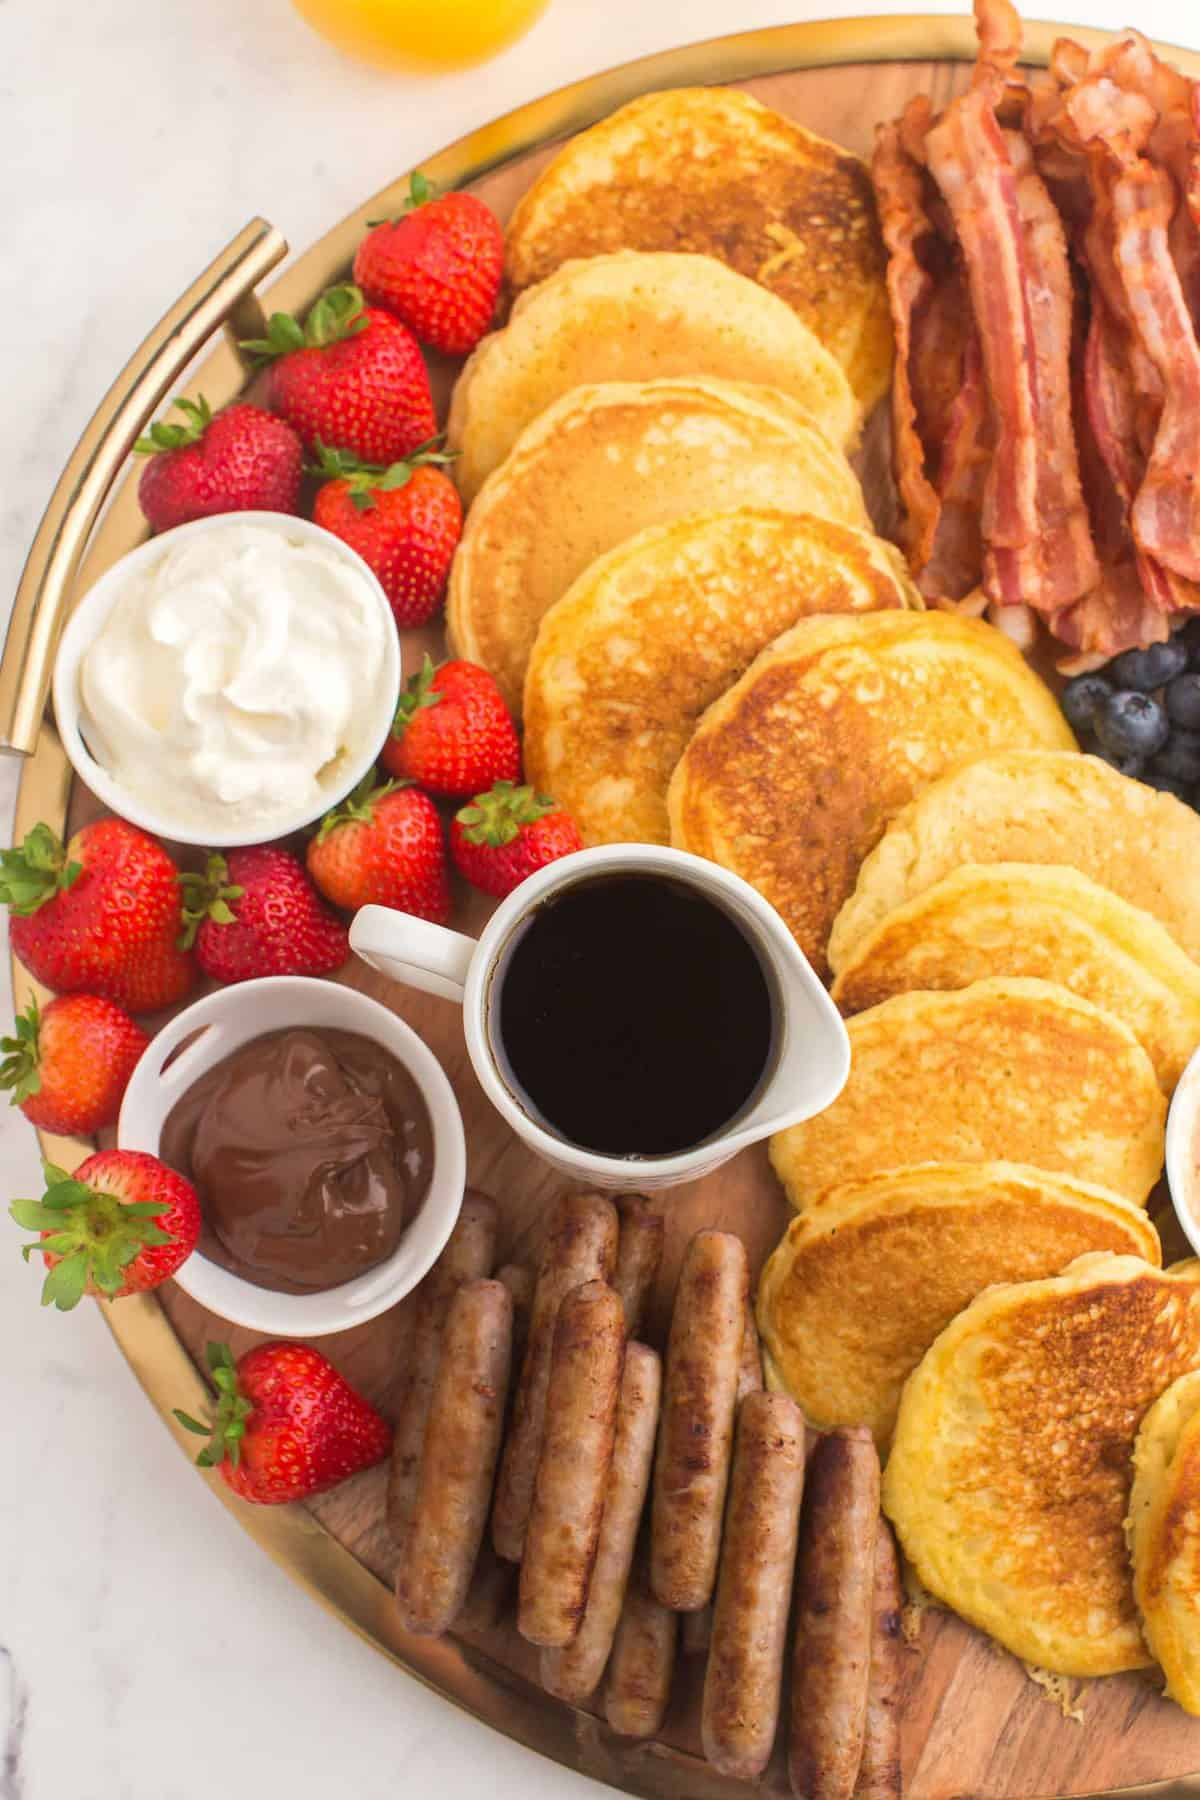 Pancakes, bacon, syrup, sausage, and strawberries on a board.